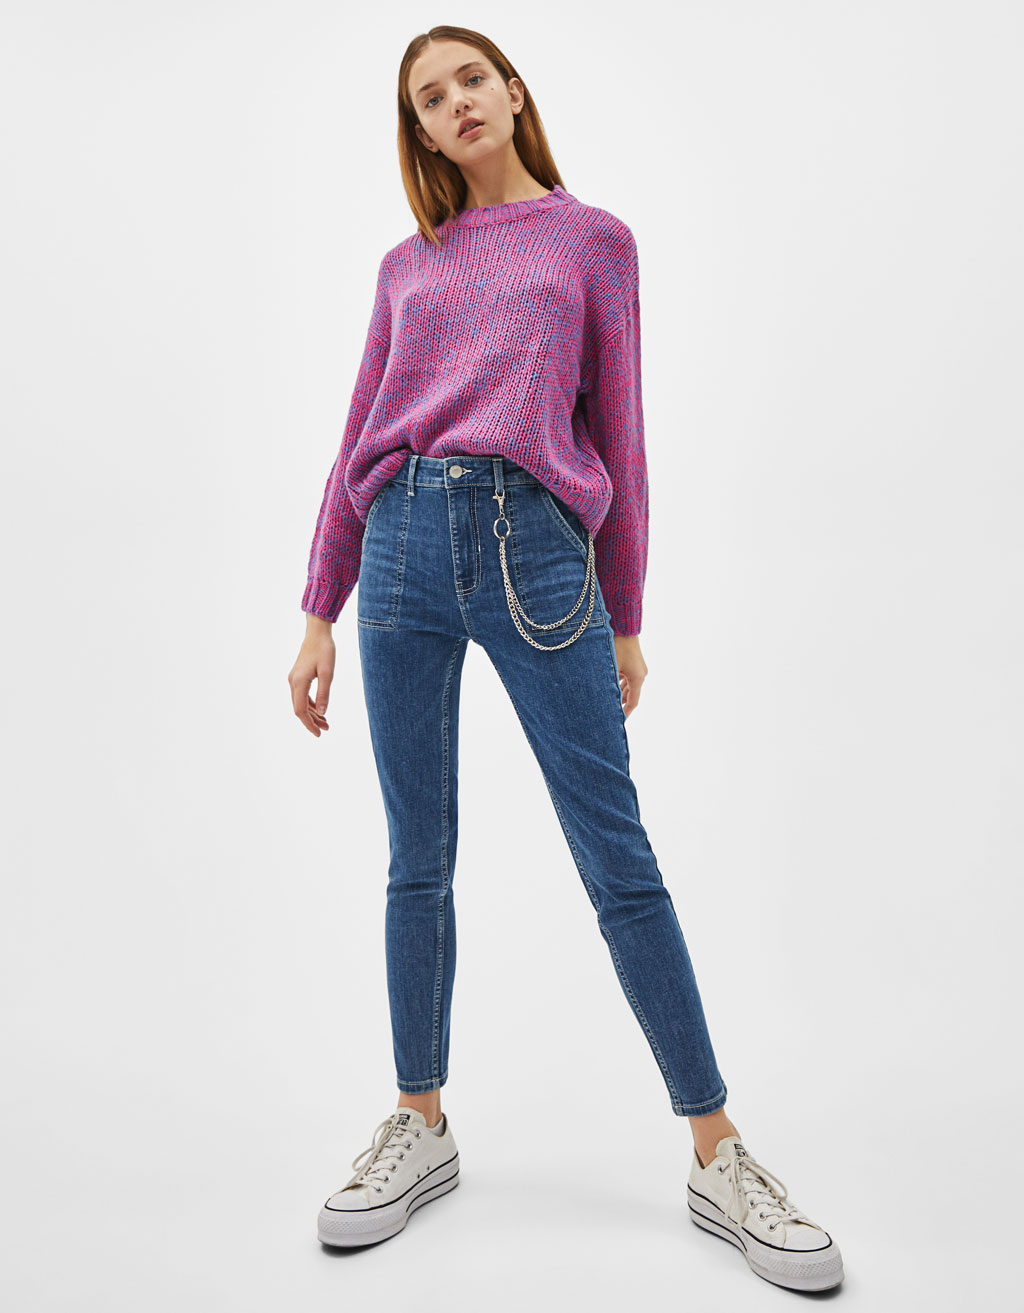 Mid-rise skinny jeans with chains